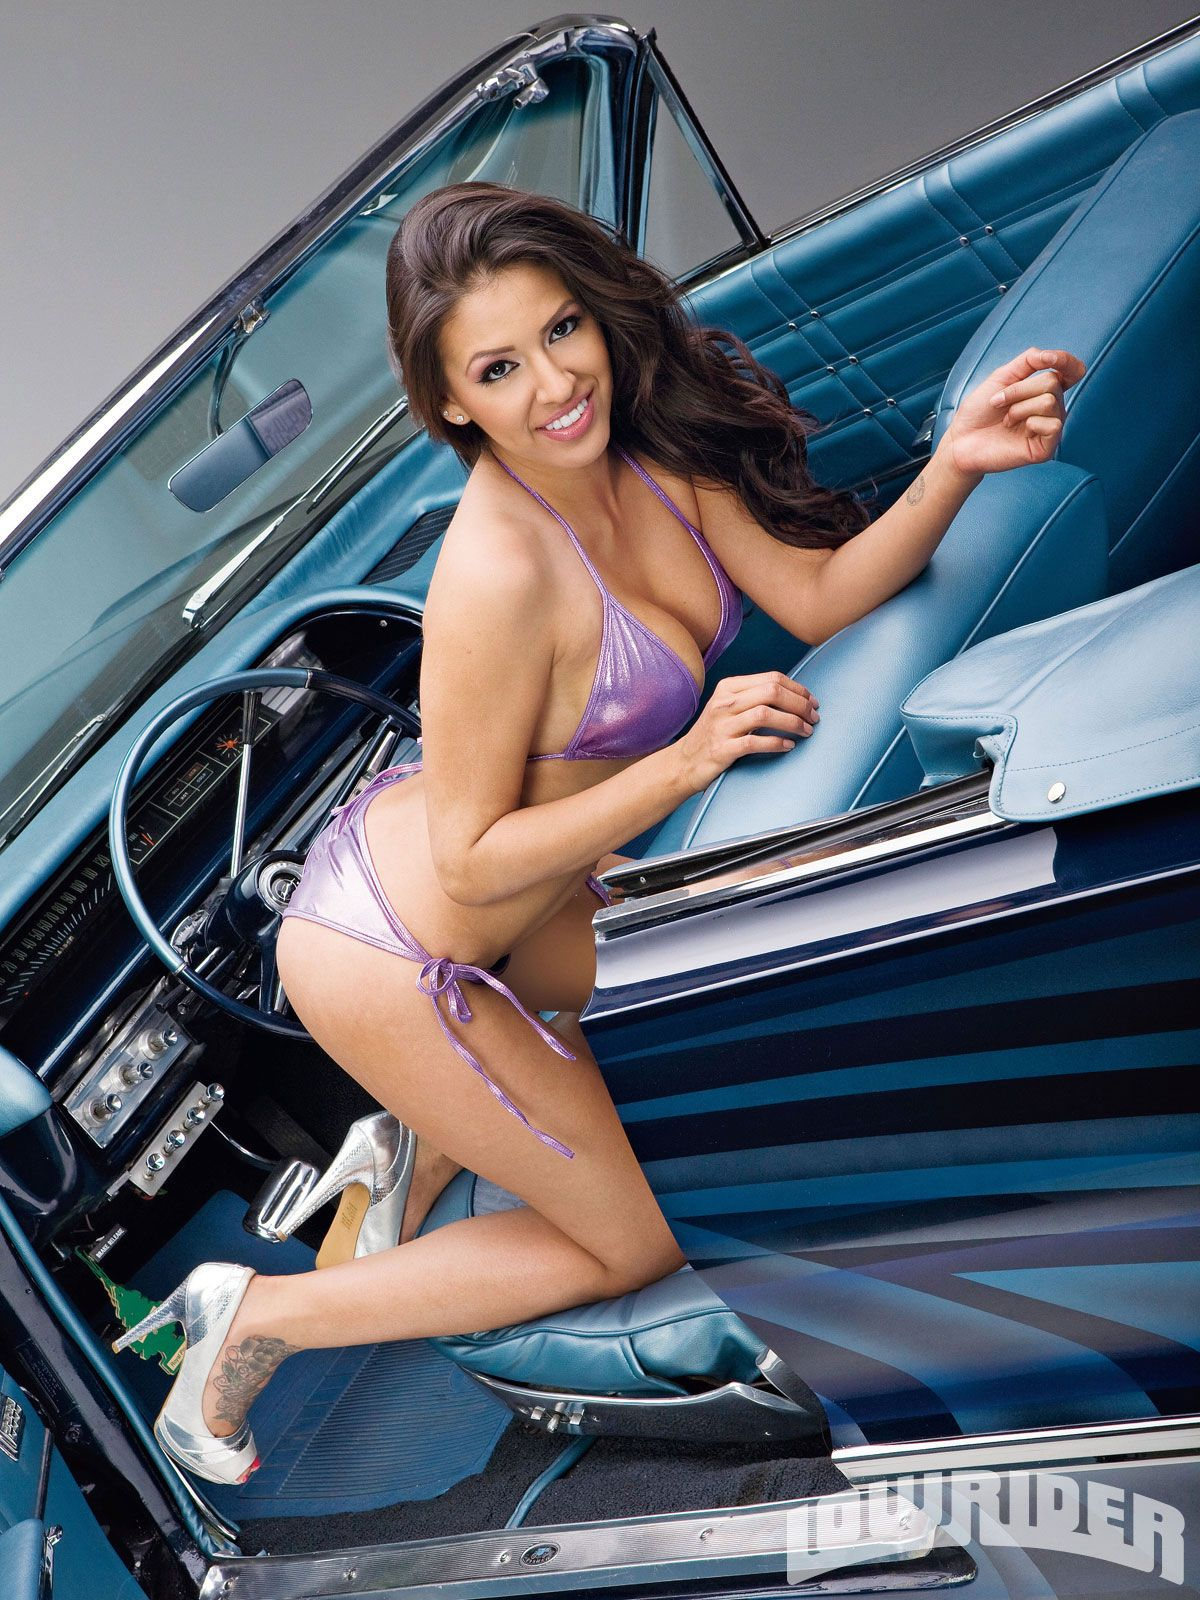 Stars Lowriders With Naked Girls Png